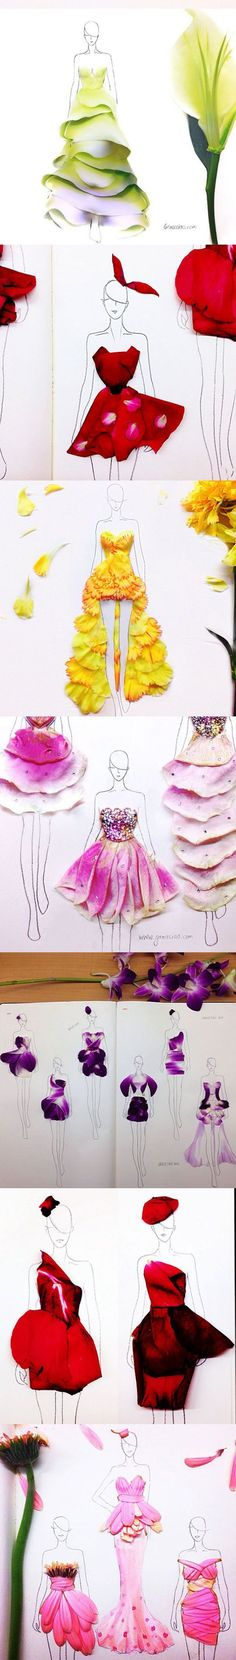 clothes are made with real flower petals. i think these are really neat:)